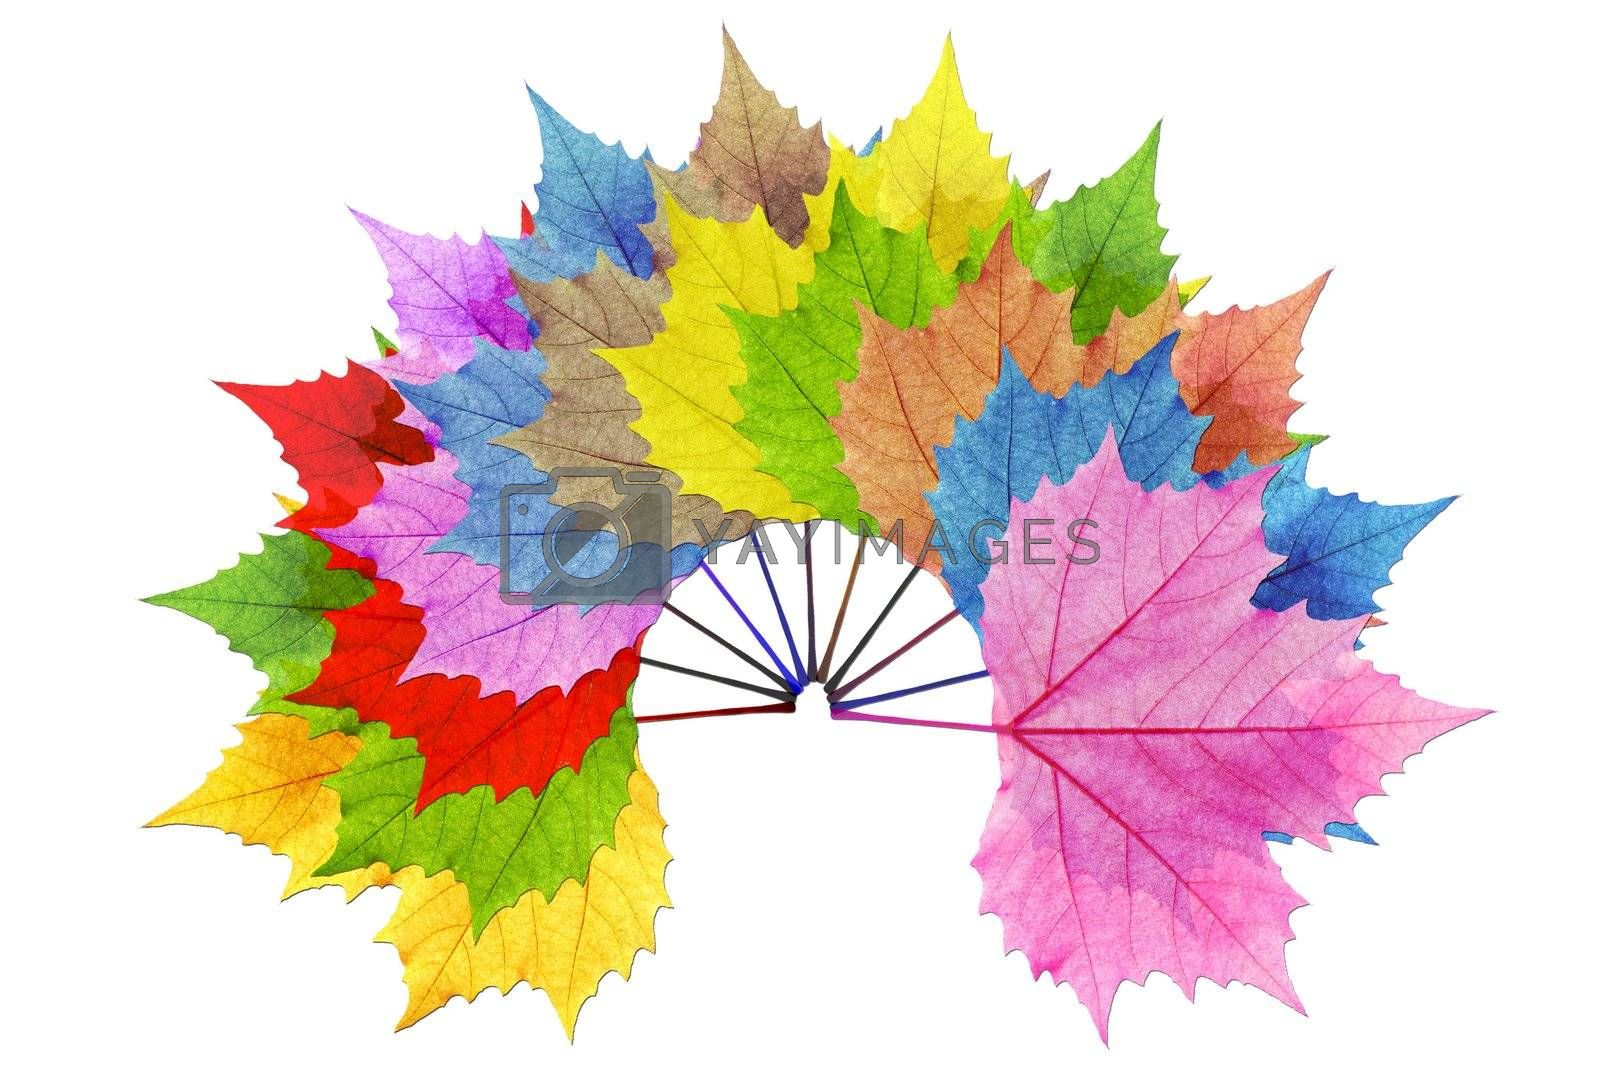 Overlay multiple leaf color with a white background to make the leaves stand out.